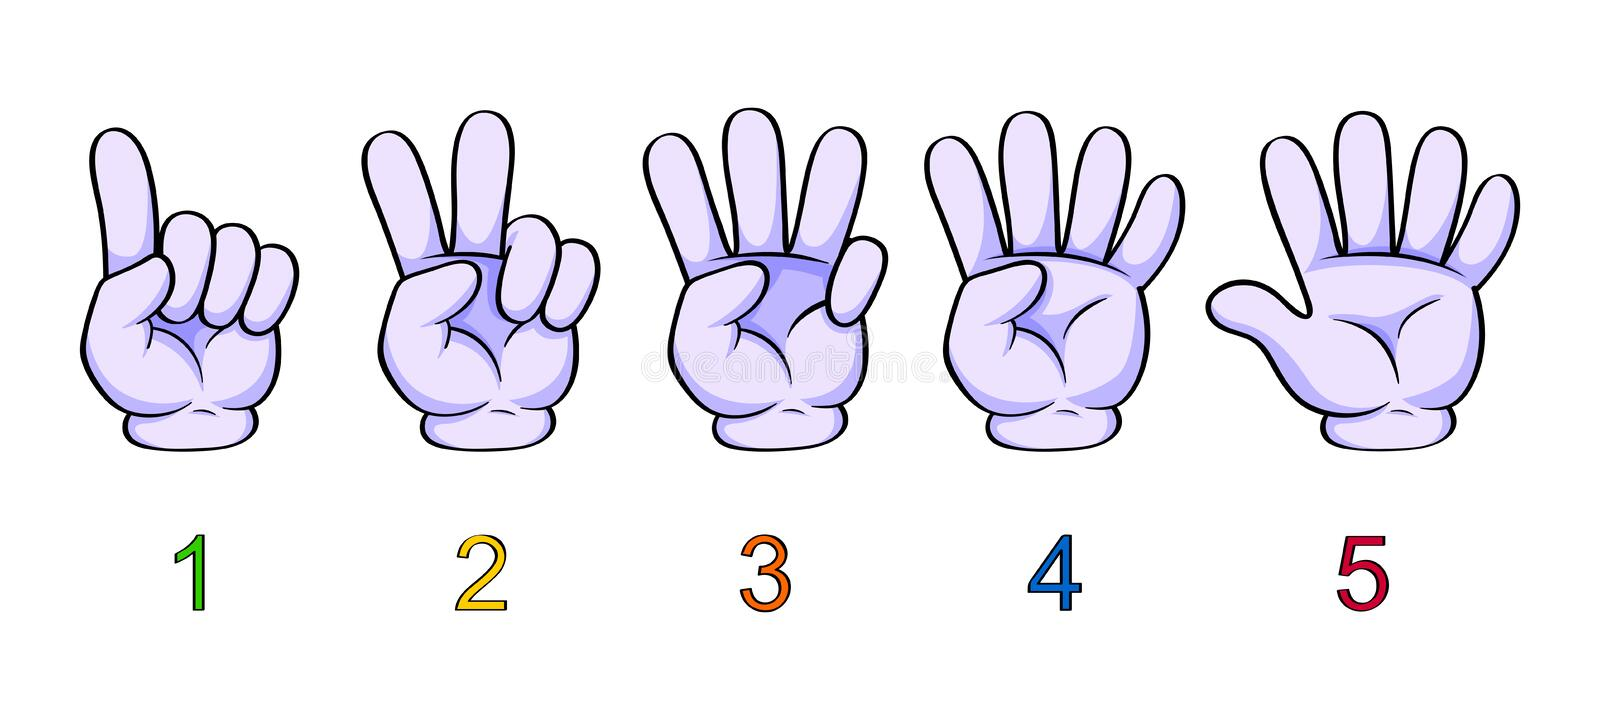 Illustration of counting hand for kids. Counting fingers from one to five. One, two, three, four, five stock illustration